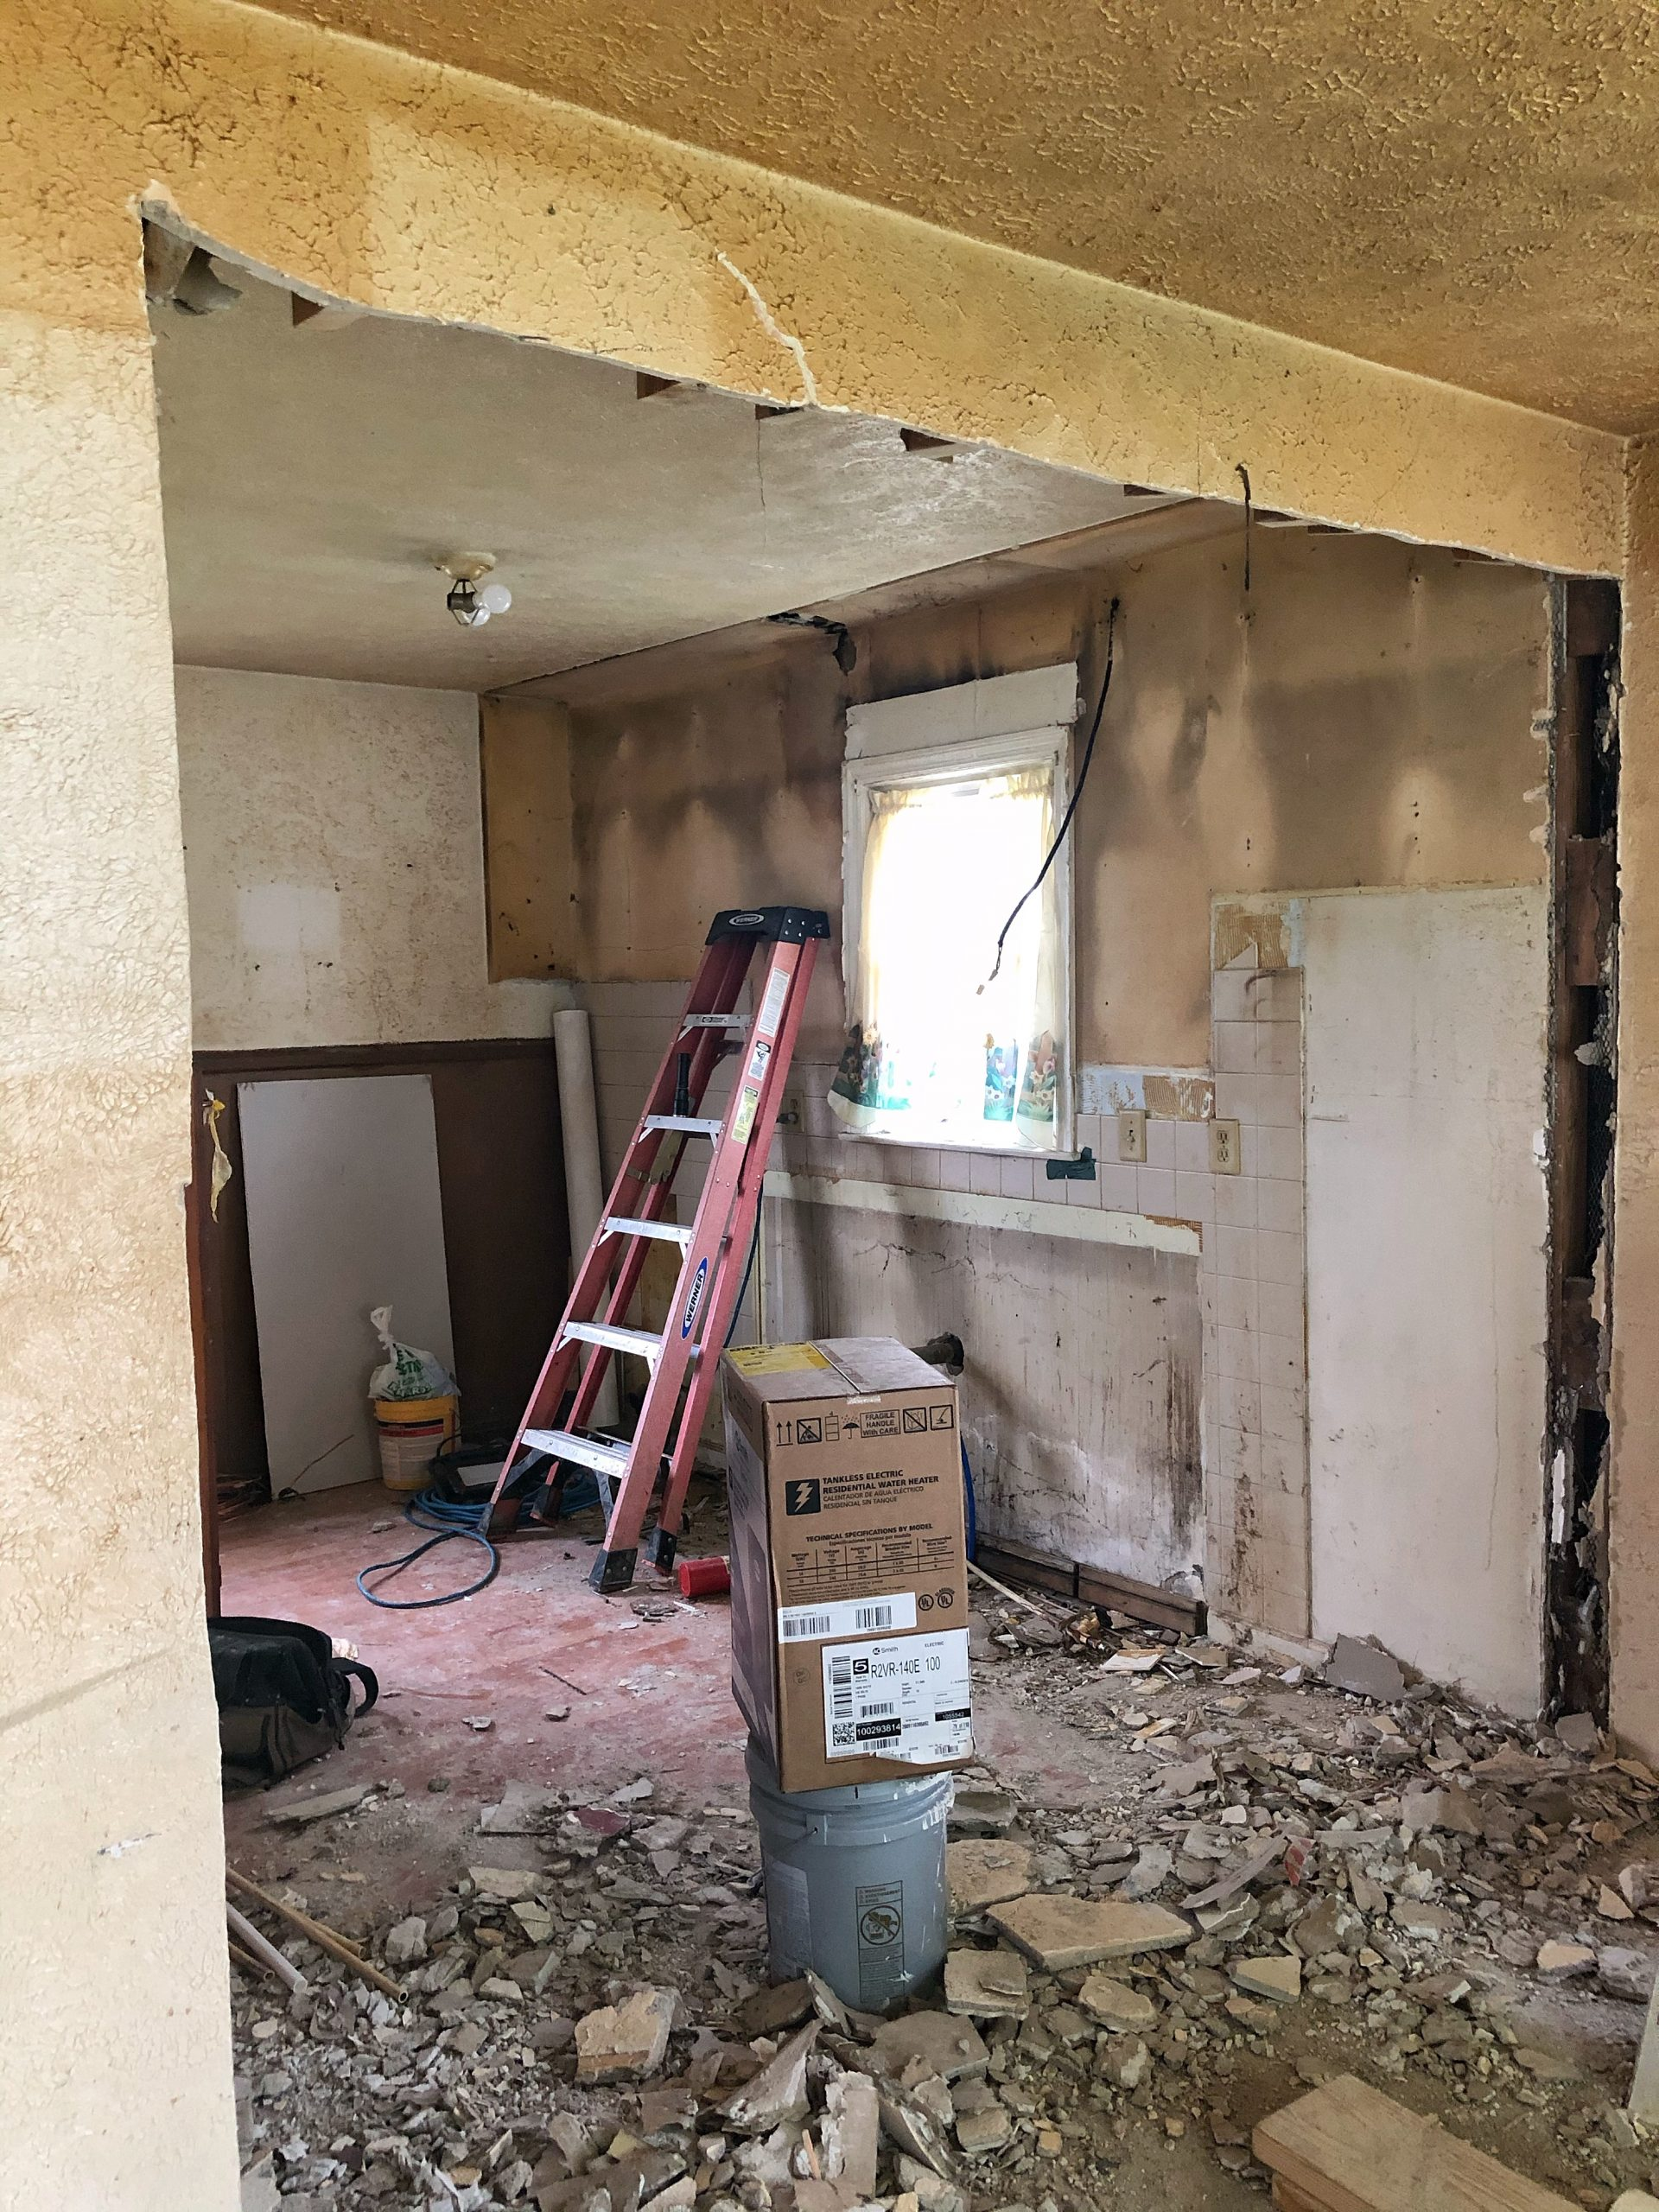 A new house remodel project you won't want to miss! Come see the before photos and our plans for this cute, little flip!